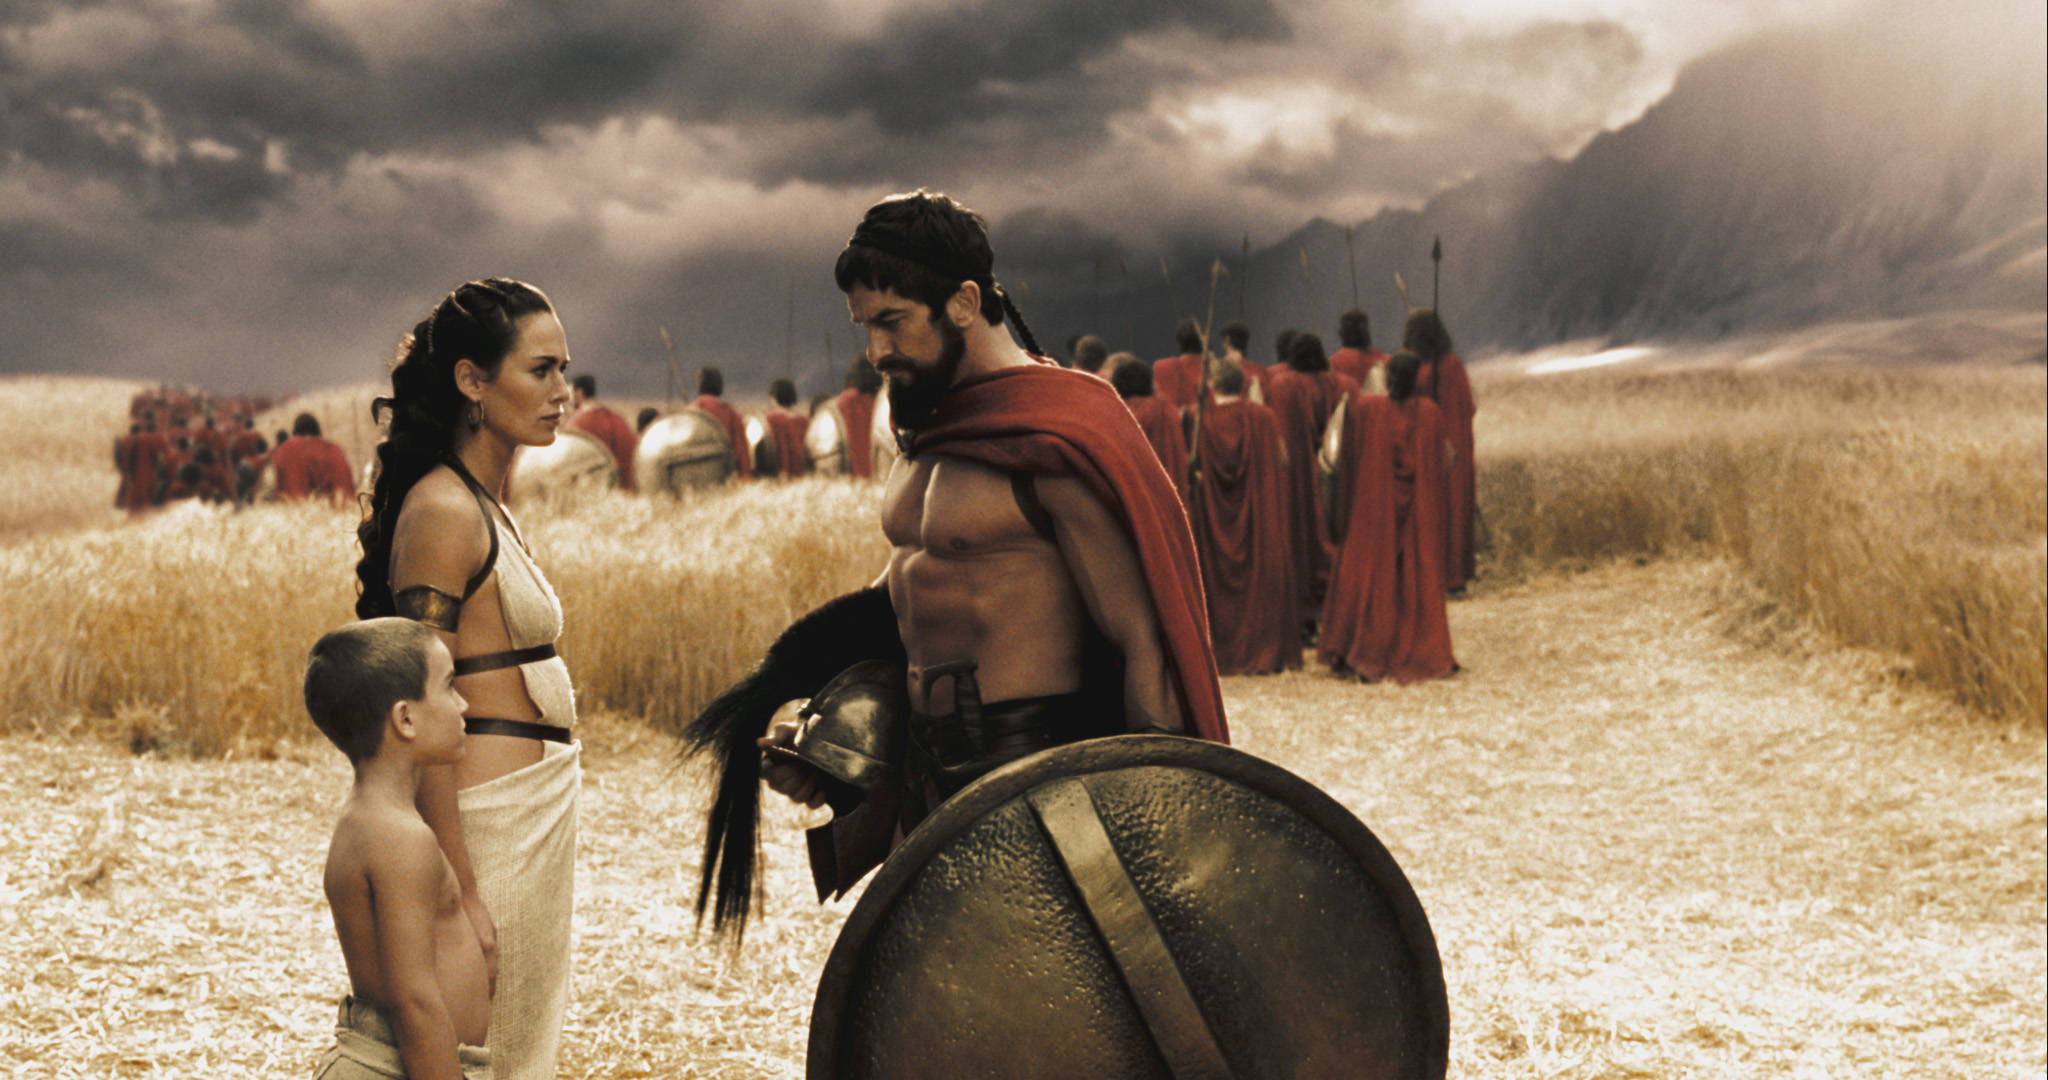 300 - Thermopylae and Rise of an Empire-5. GORGO